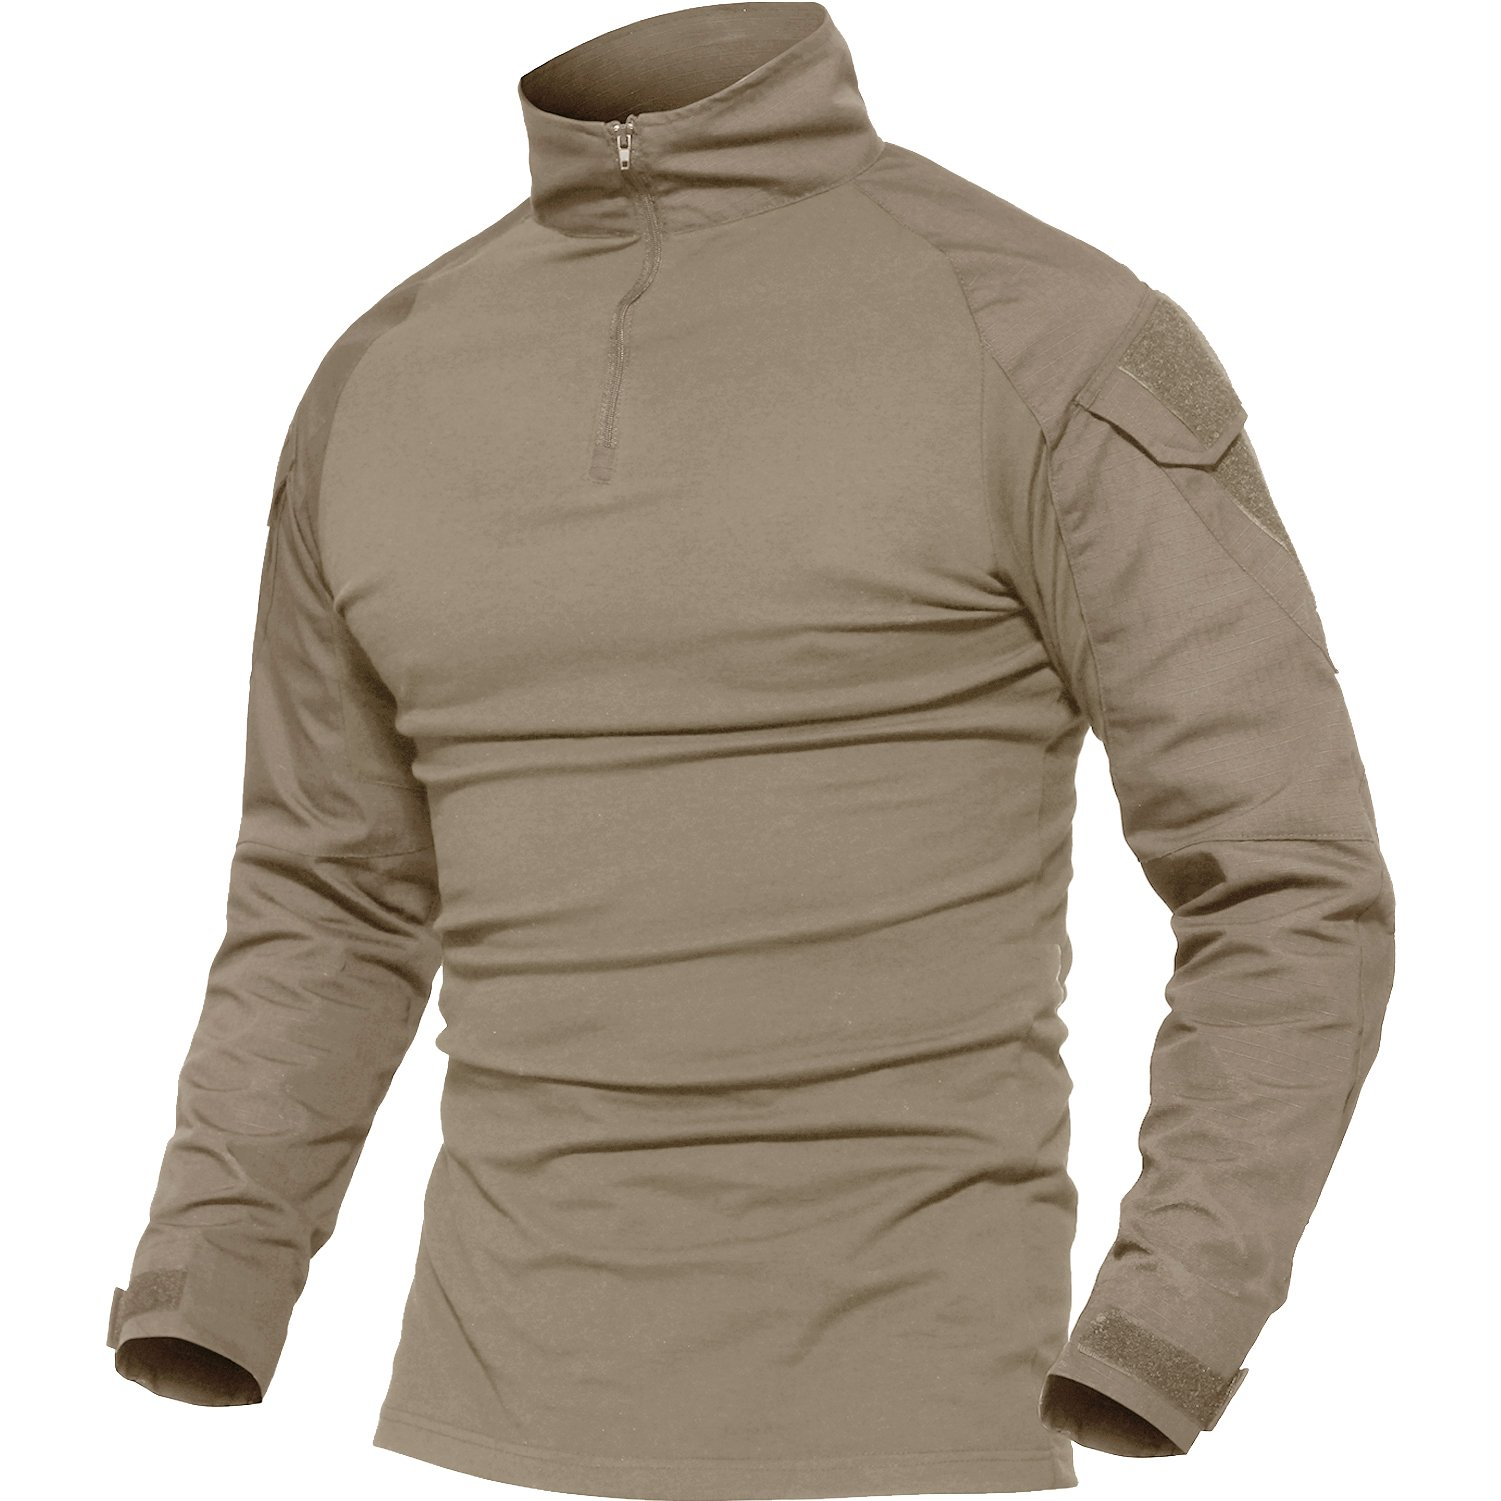 MAGCOMSEN Casual Shirts for Men Long Sleeve Summer Polo Collar Jogging T-Shirt 100 Cotton Tee Top Khaki by MAGCOMSEN